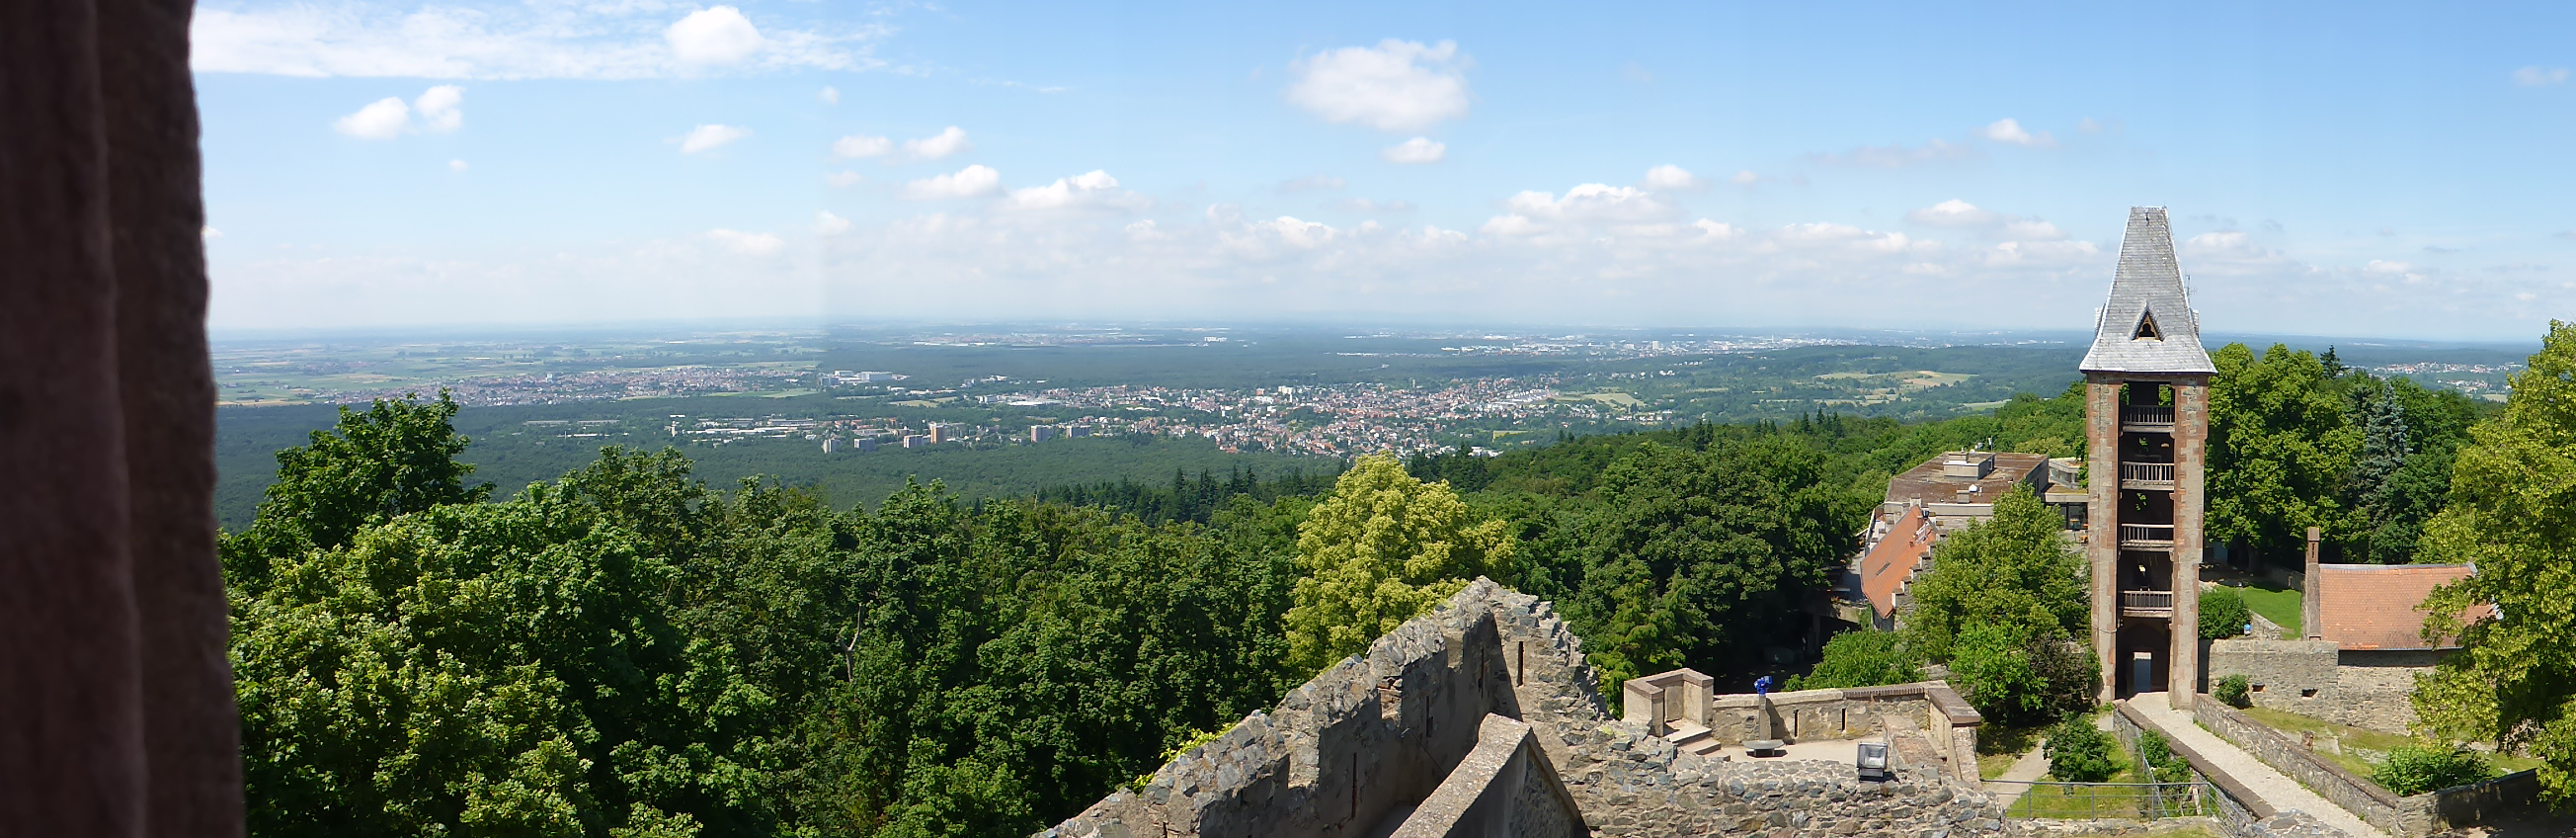 The view from Burg (Castle) Frankenstein